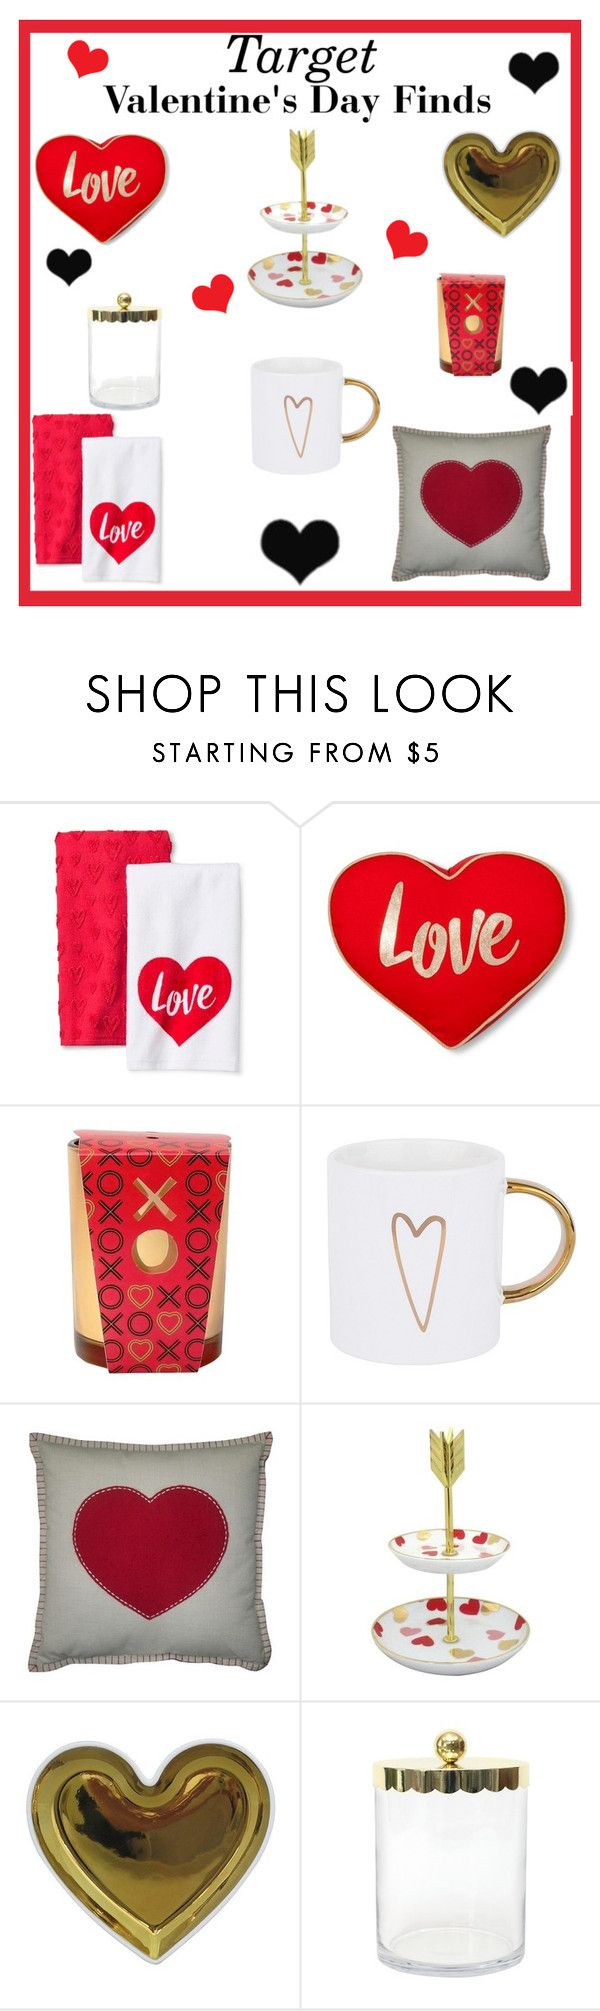 """Target Valentine's Day Finds"" by lanaebond ❤ liked on Polyvore featuring XOXO, West 